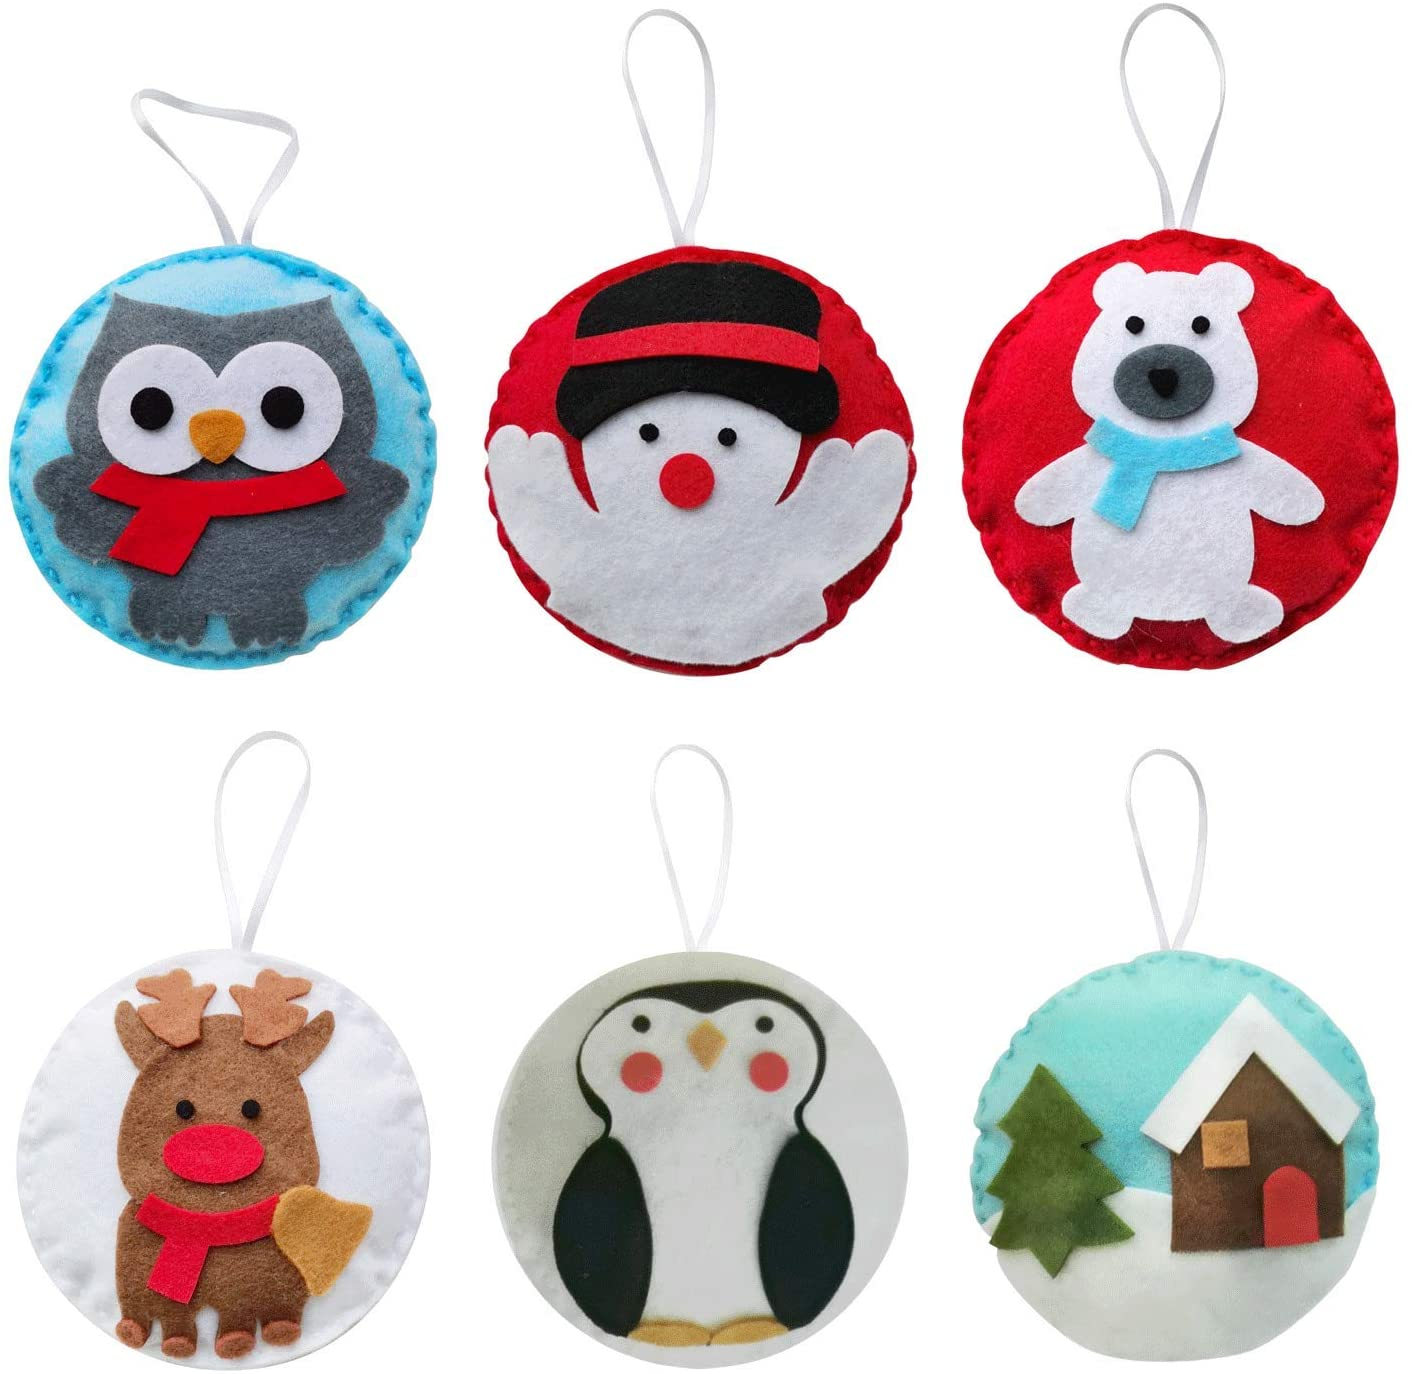 MOVEBO Felt DIY Sewing Crafts (Christmas Ornaments DIY Set),DIY Kit My First Sewing Kit for Kids Girls Boys Preschool Sewing Kits Projects Craft Kits for Kids Sewing Kit Art Projects